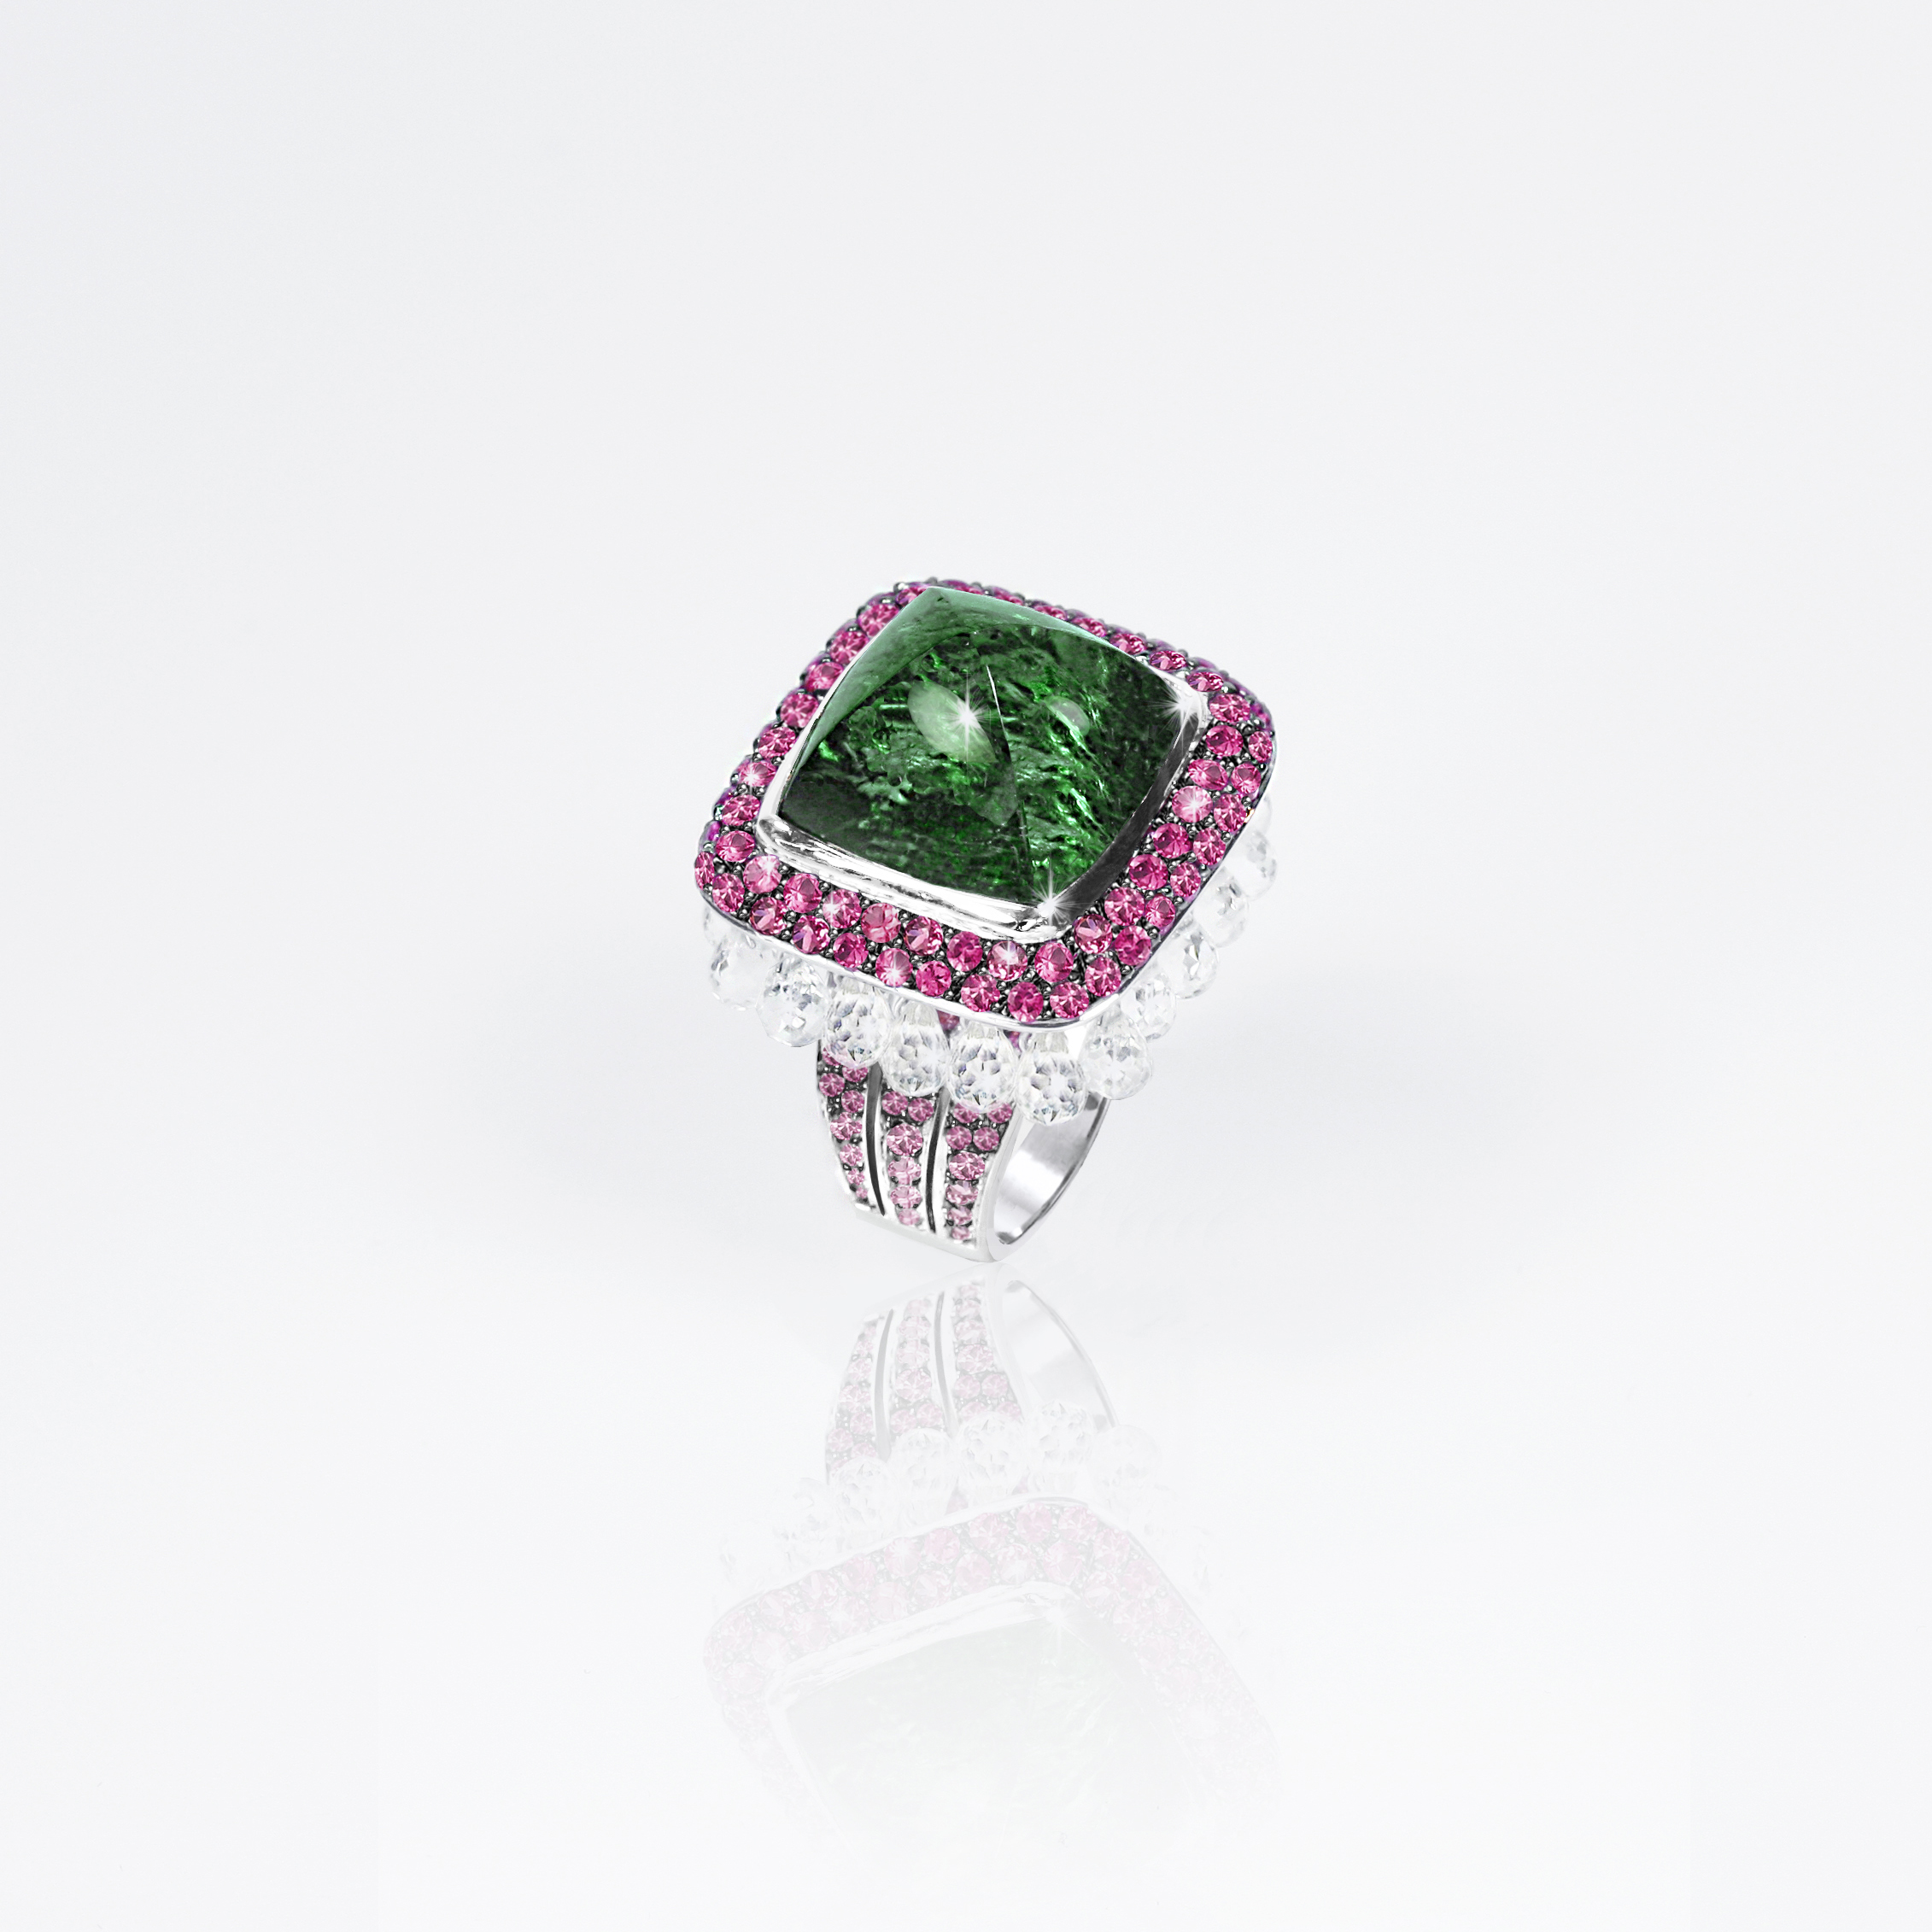 'JAIPUR' RING WITH GREEN TOURMALINE CABOCHON. PINK SAPPHIRES & WHITE TOPAZ BRIOLETTES IN WHITE GOLD